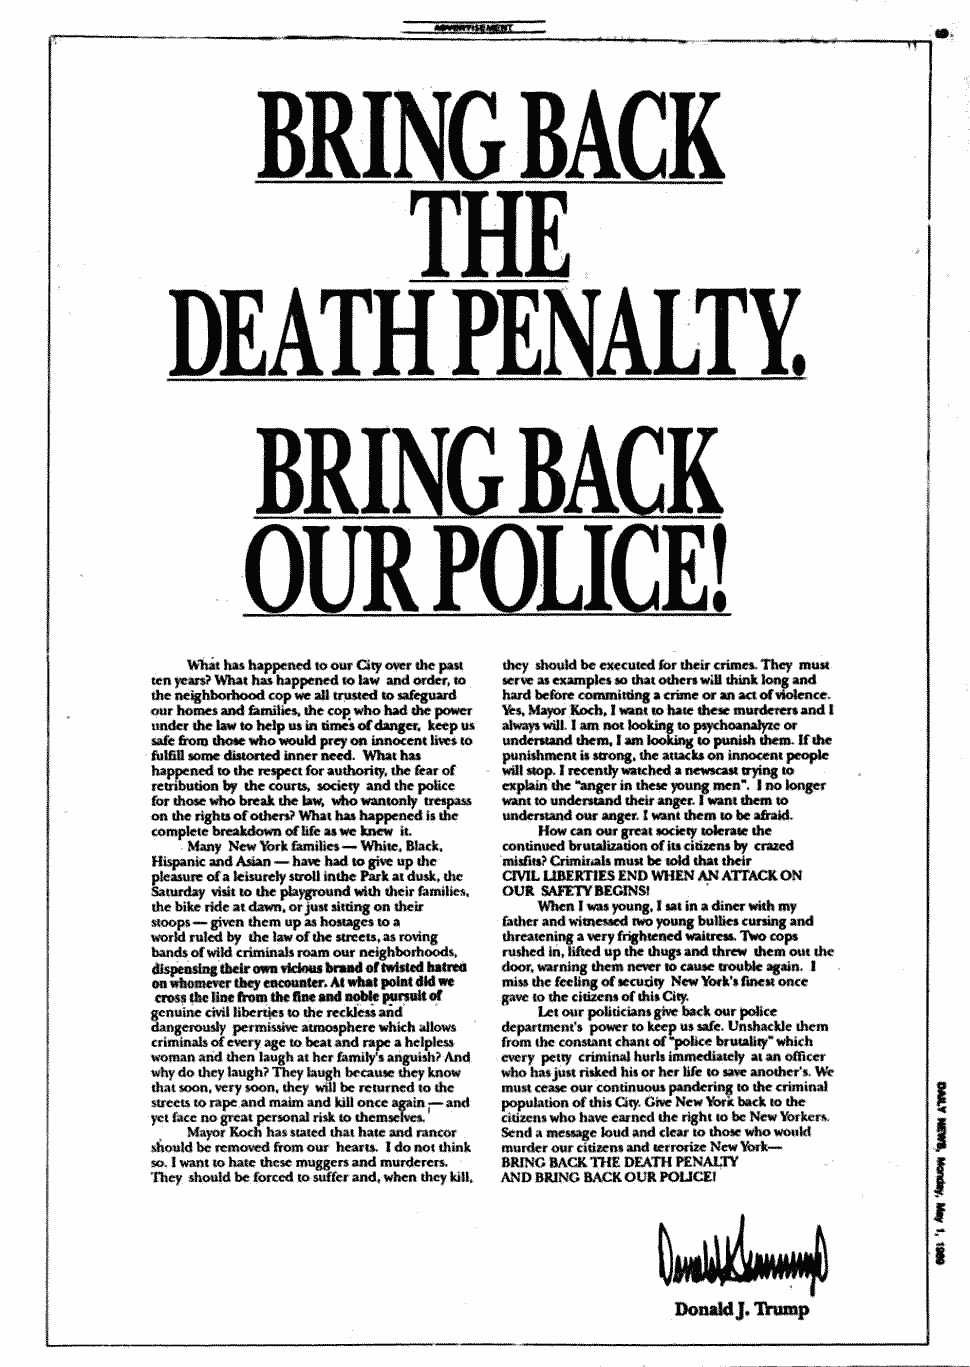 https://cruelery.com/uploads/359_1989-trump-death-penalty-ad.png